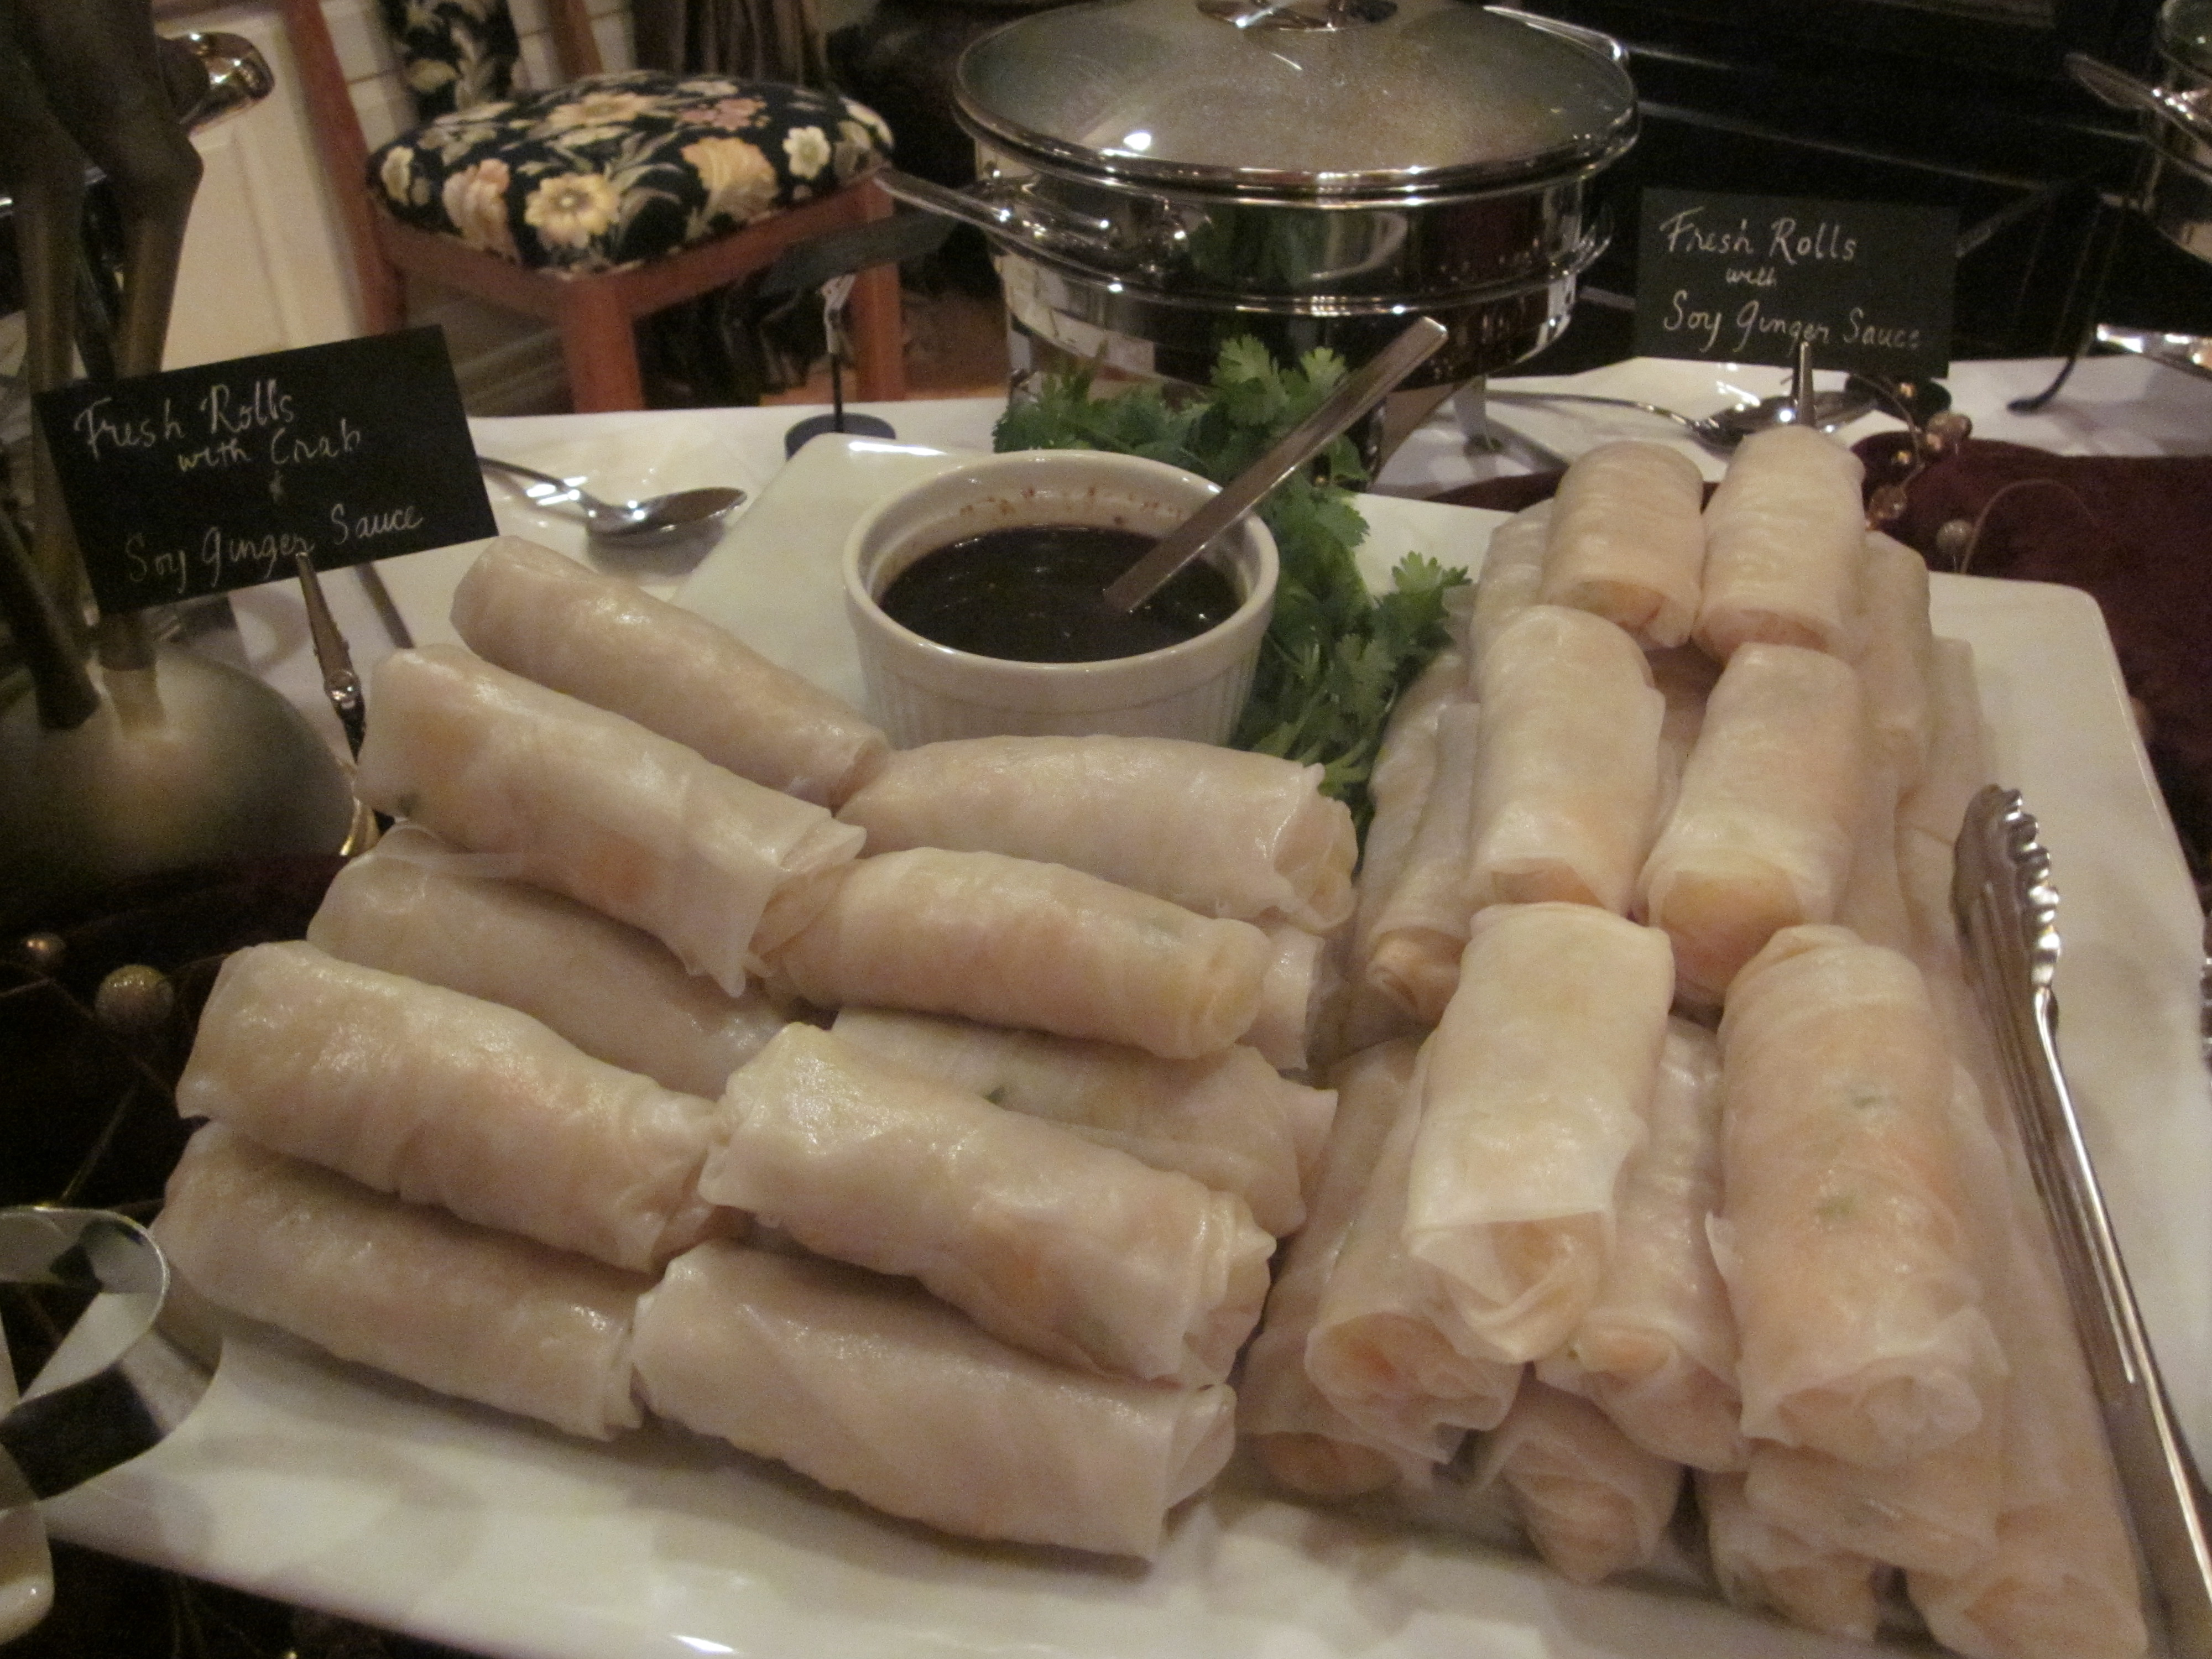 Fresh rolls filled with bean thread noodle salad and crab